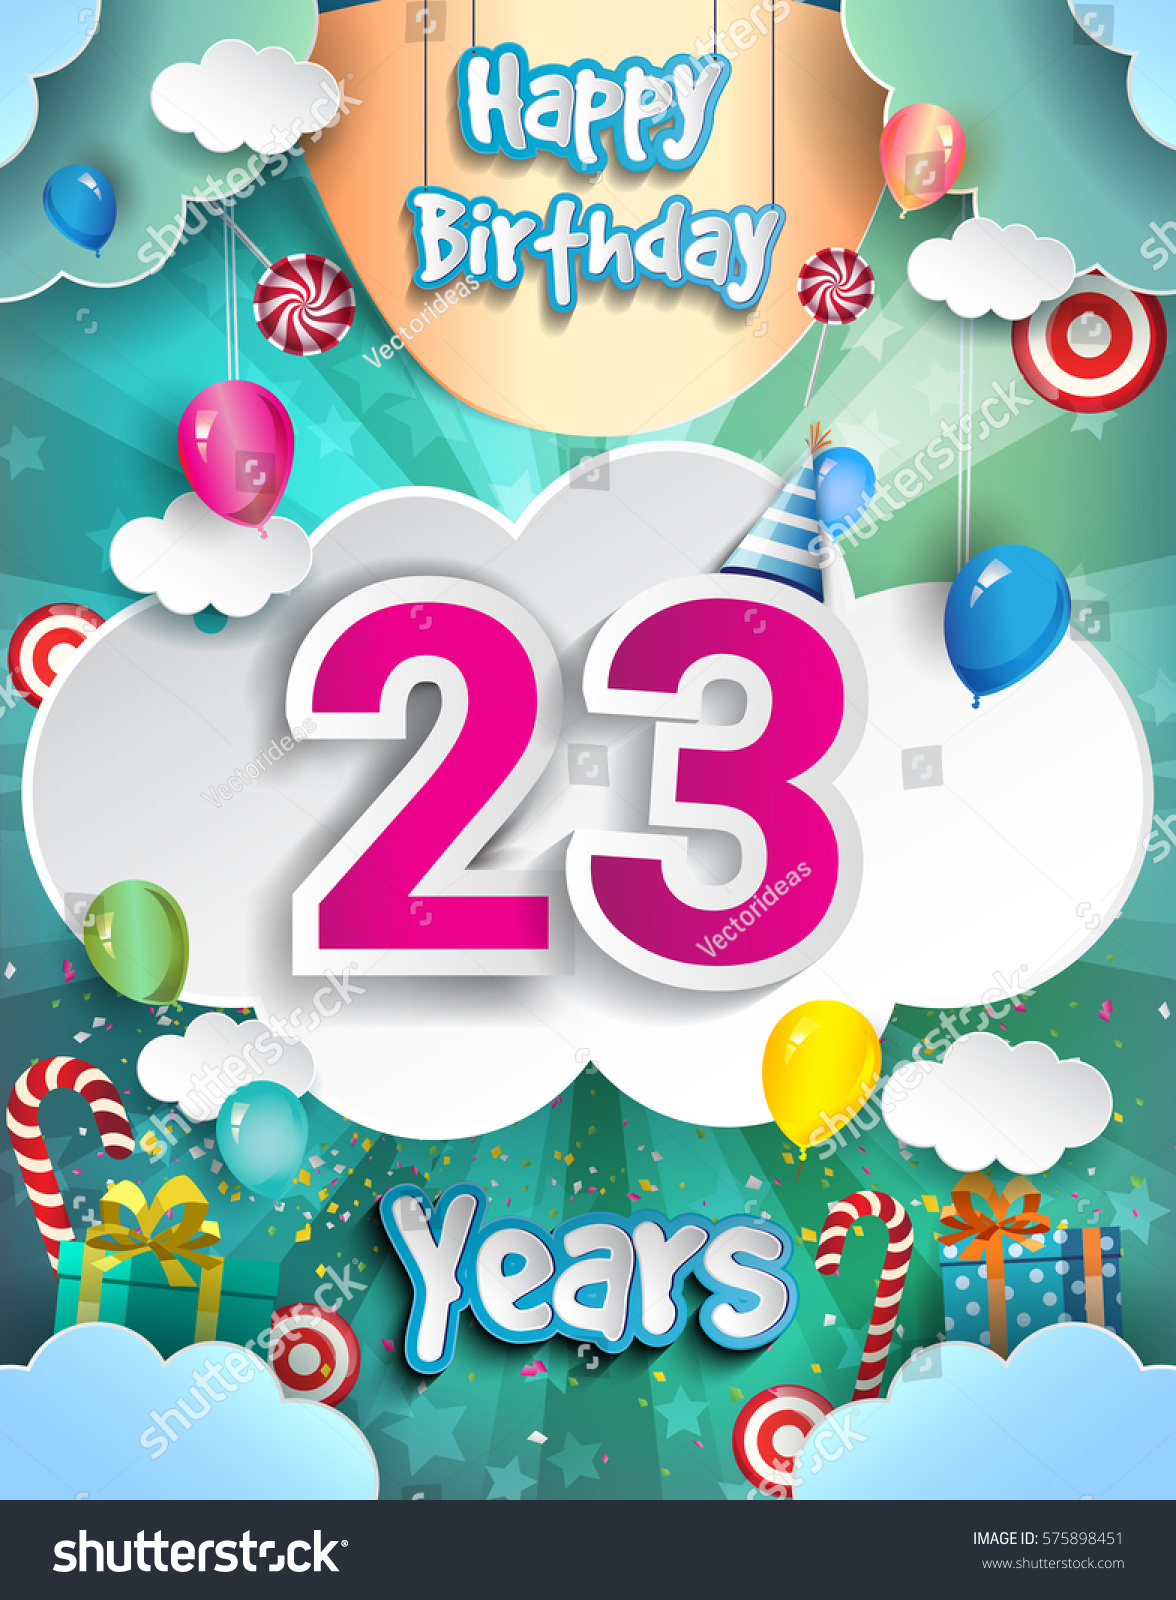 23 Years Birthday Design For Greeting Cards And Poster With Clouds Gift Box